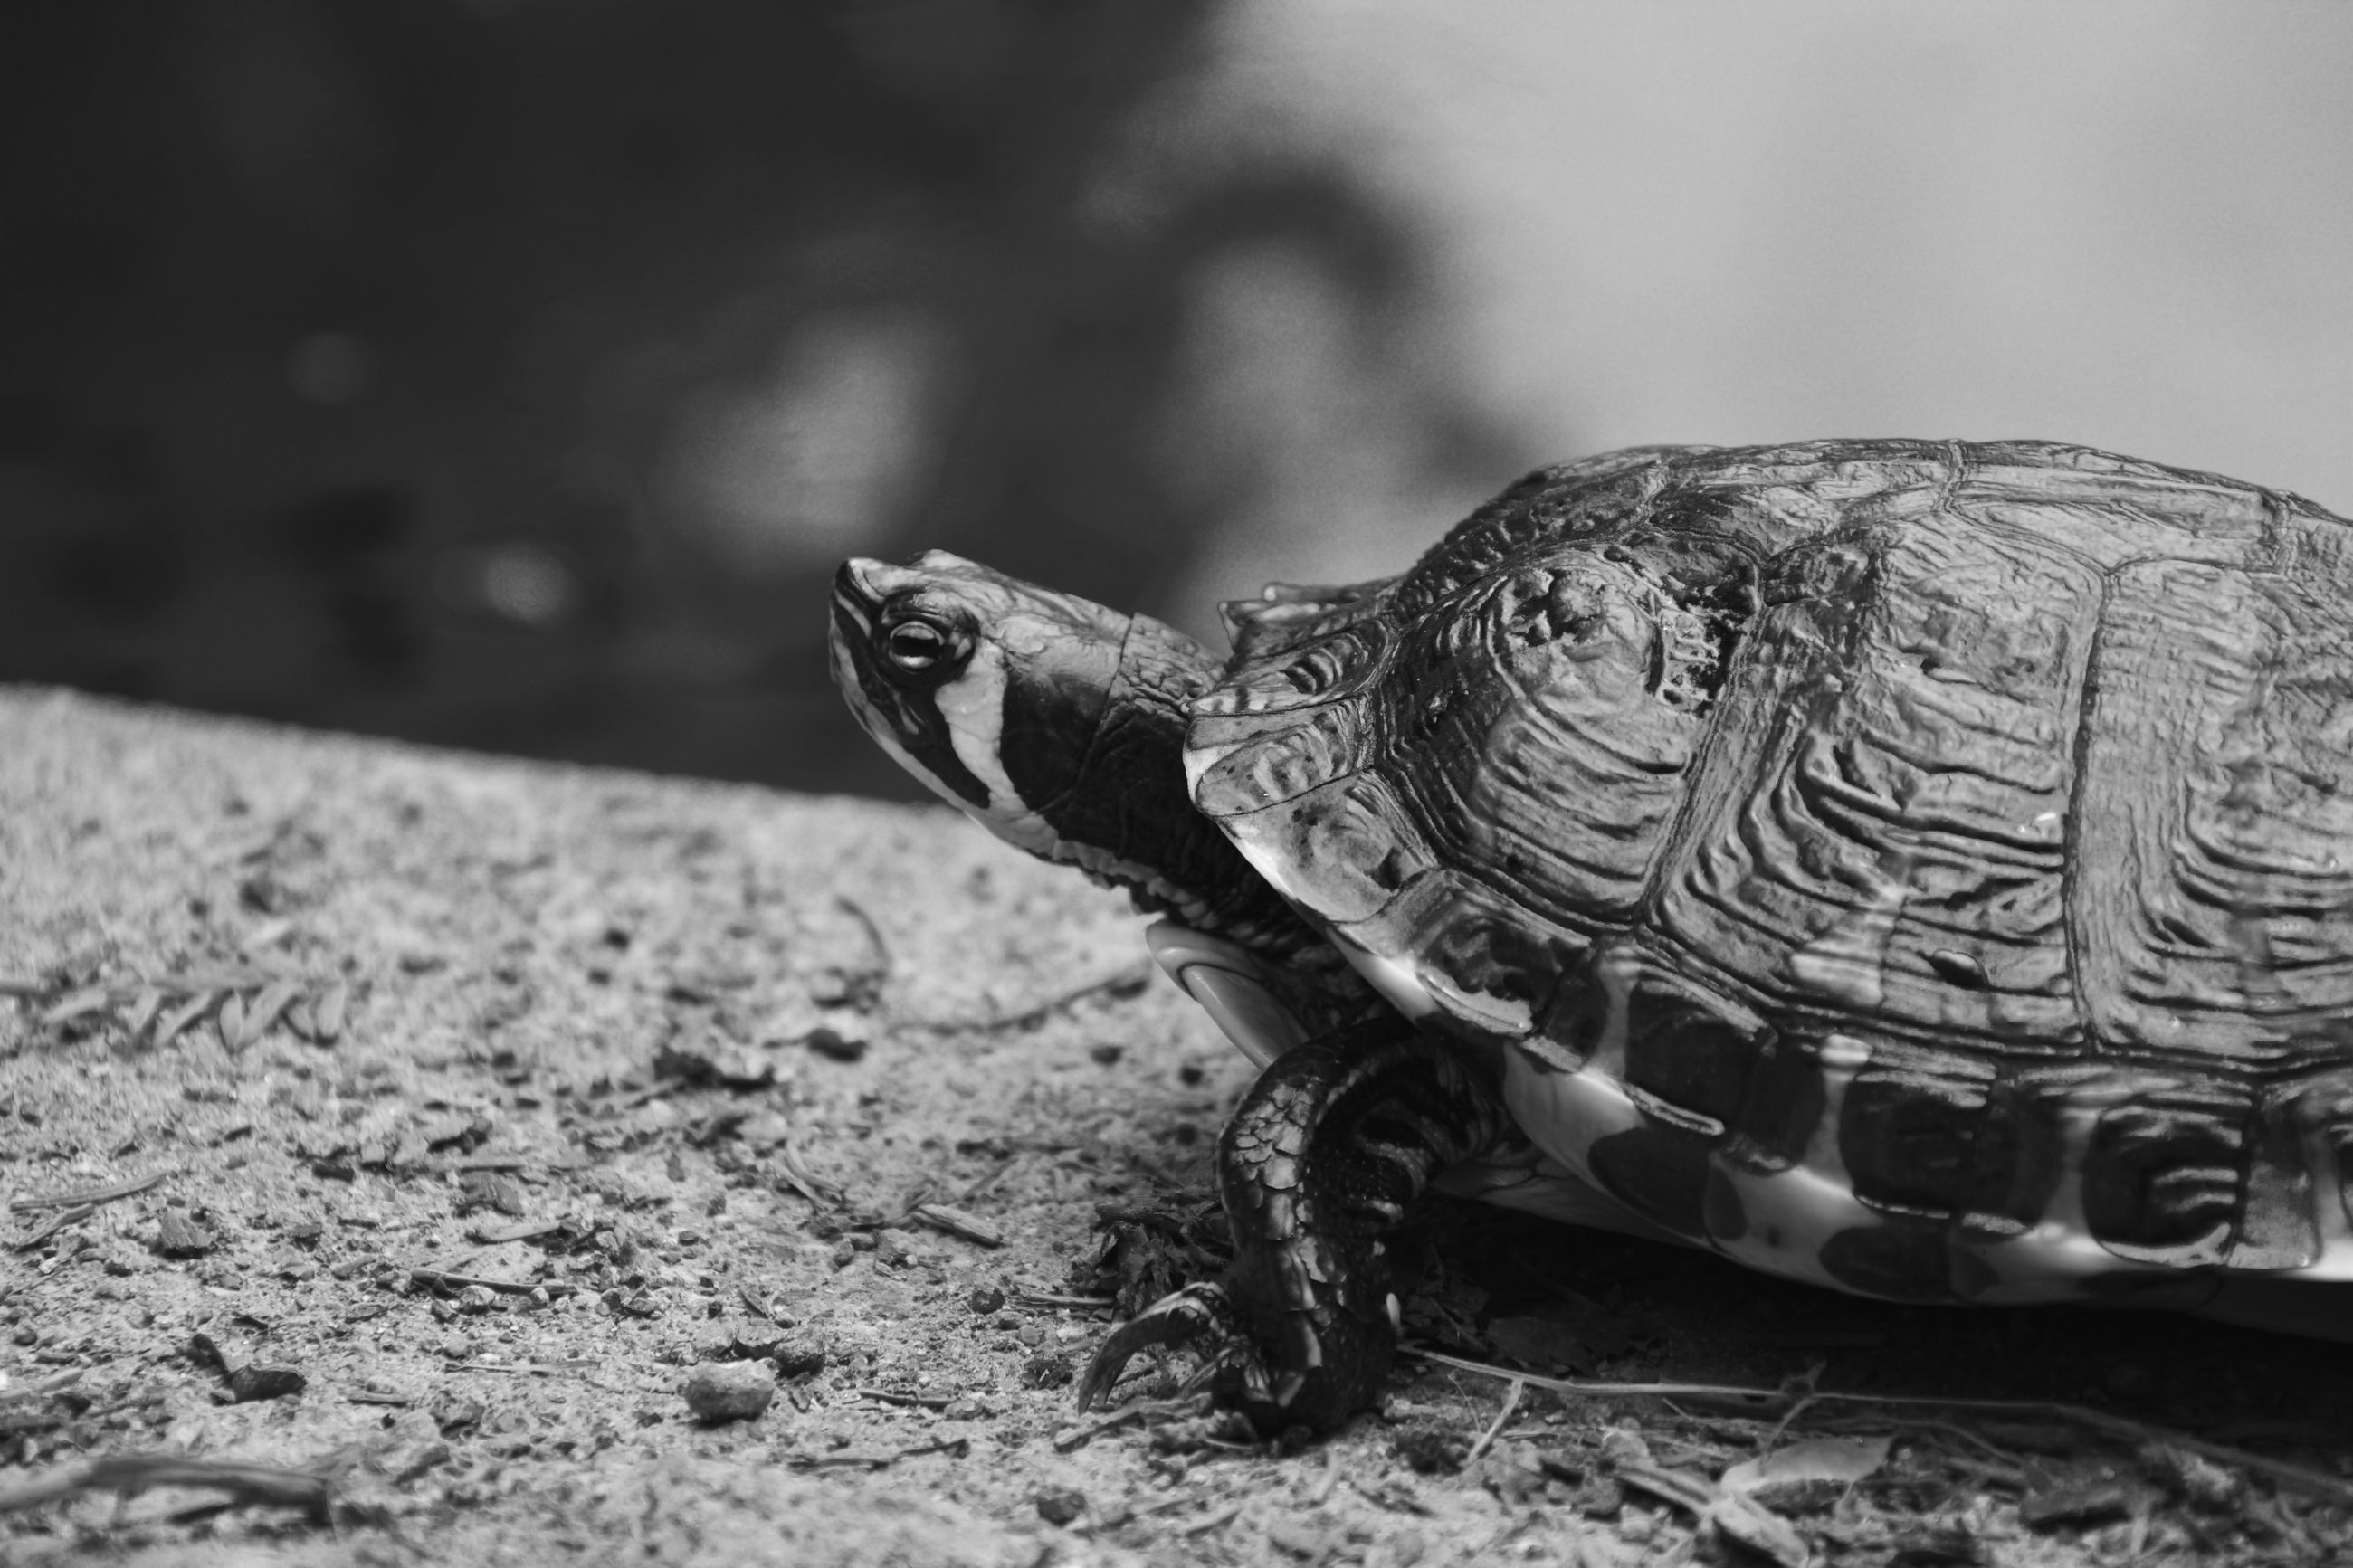 animal wildlife, reptile, turtle, animal themes, one animal, animals in the wild, animal, vertebrate, shell, animal shell, close-up, no people, focus on foreground, selective focus, nature, tortoise, day, side view, animal body part, zoology, tortoise shell, animal head, marine